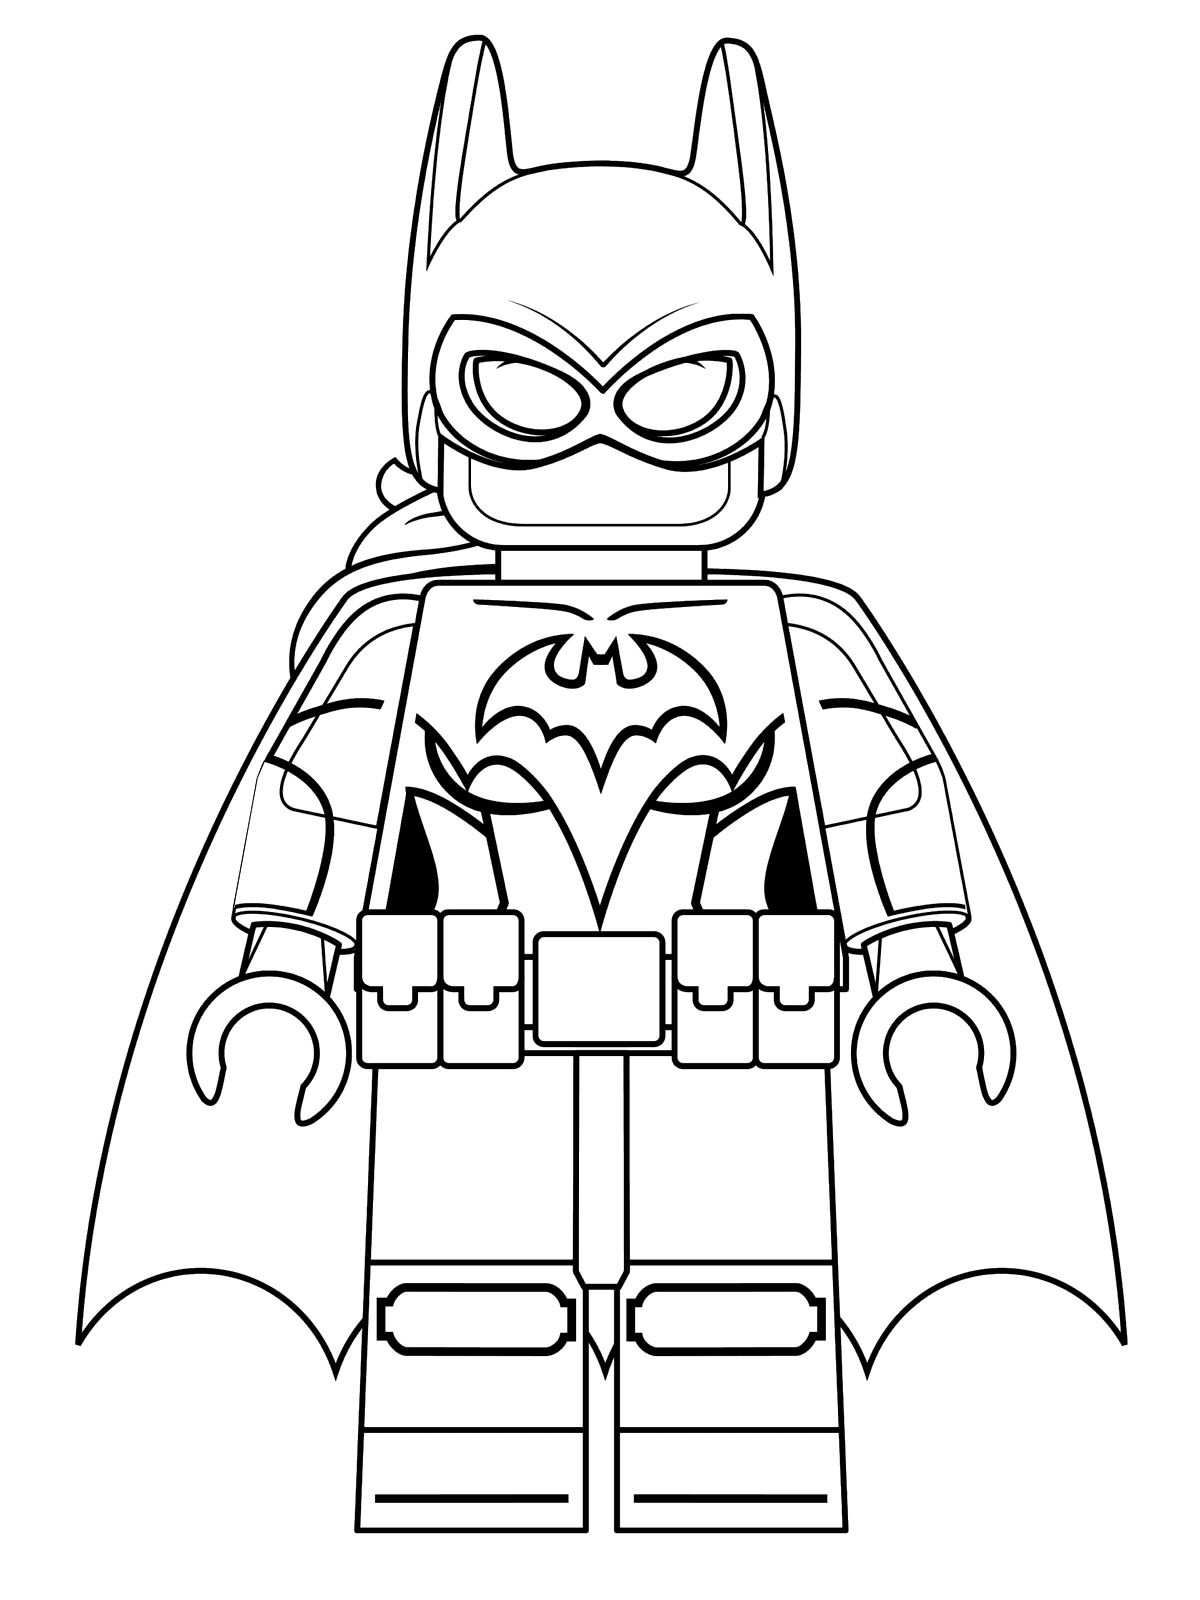 The Lego Movie 2 | Drawing Lego Minifigures Coloring Pages | 1600x1200